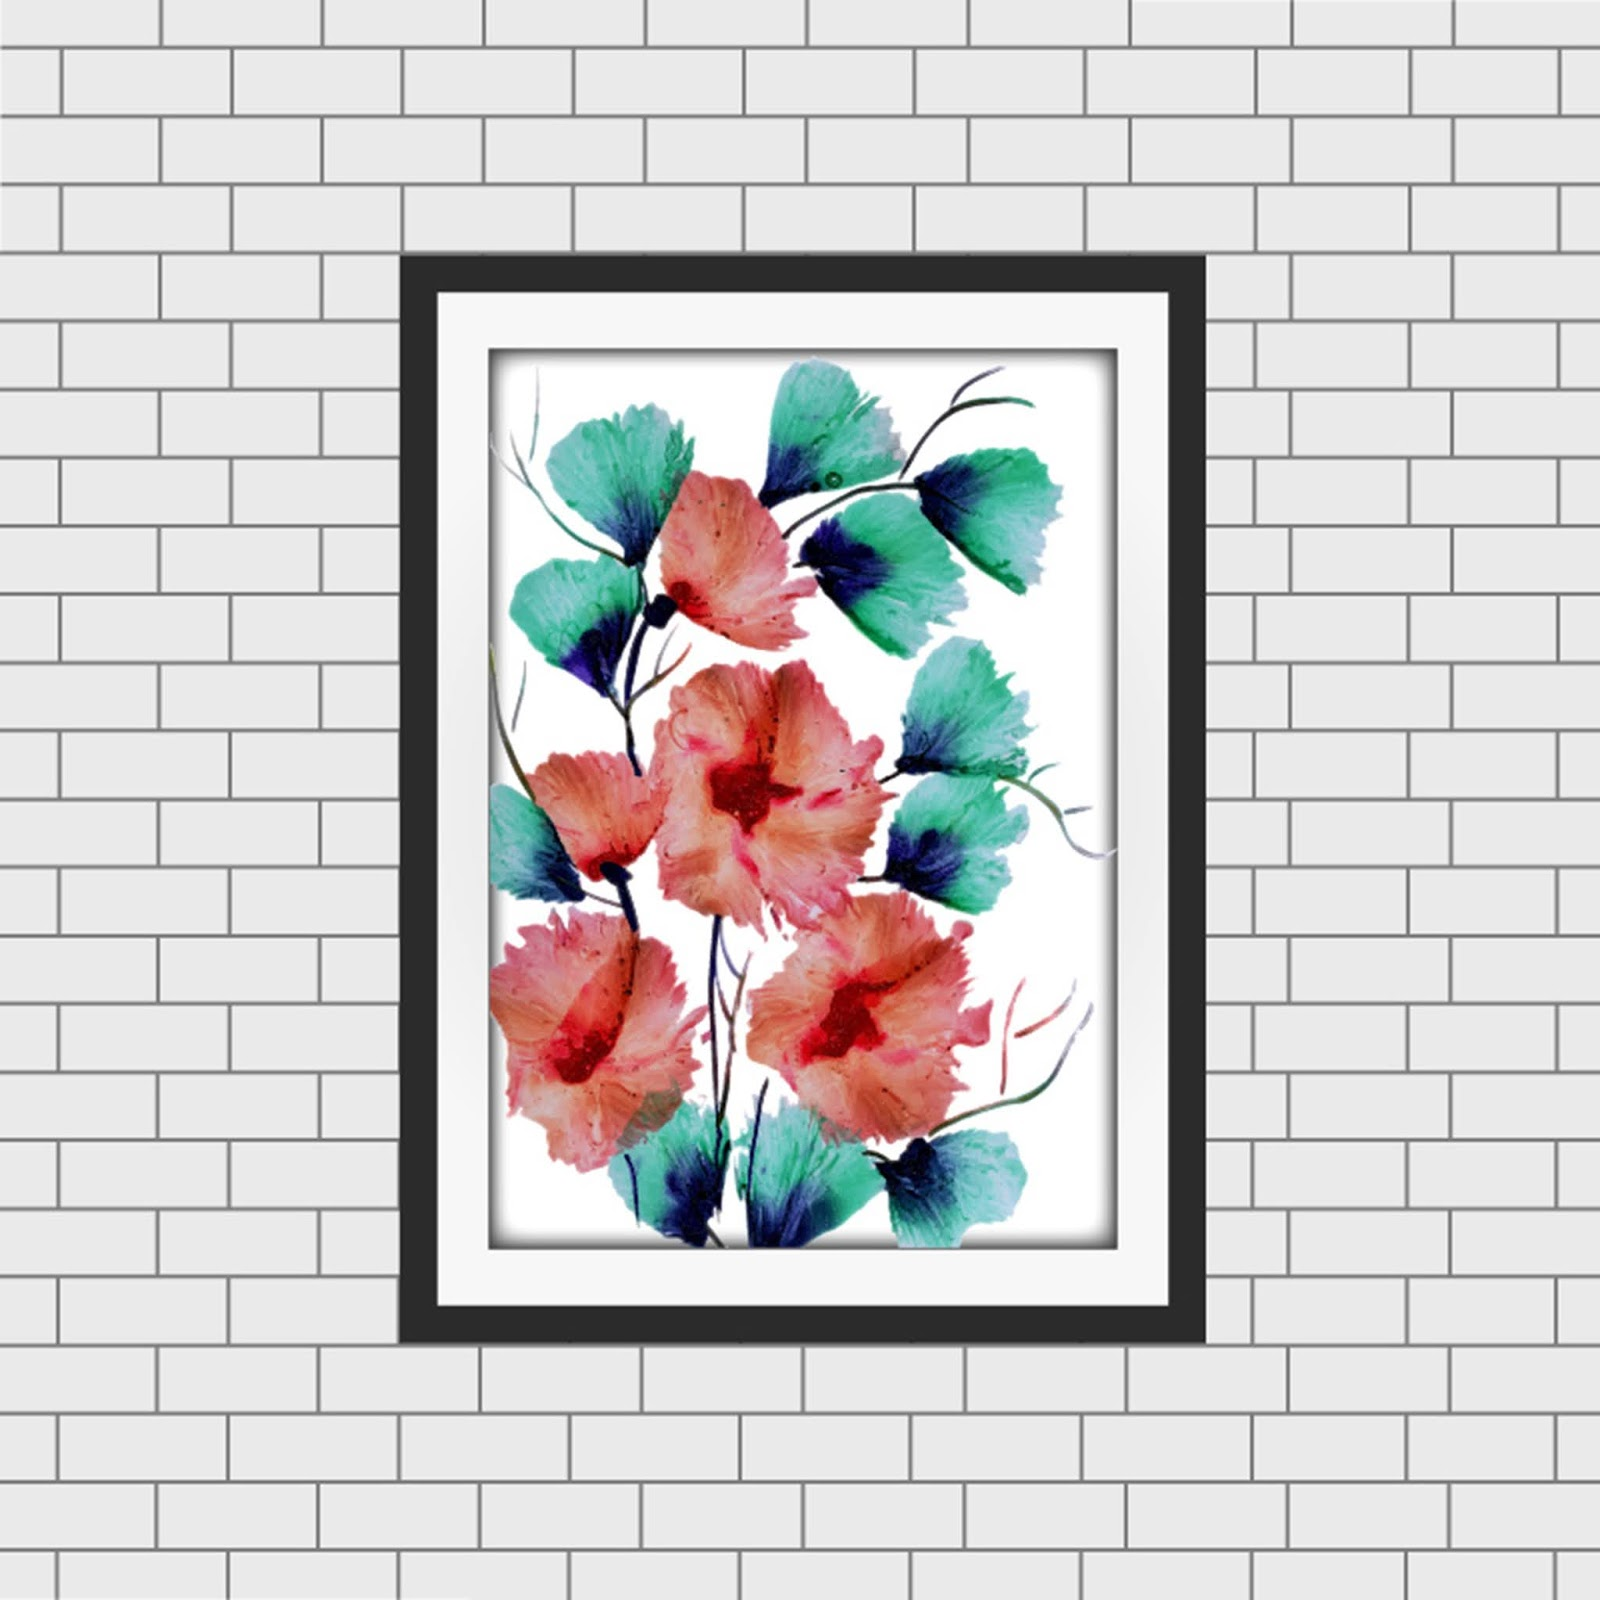 Watercolor Floral Frame Mockup Free Download Vector CDR, AI, EPS and PNG Formats